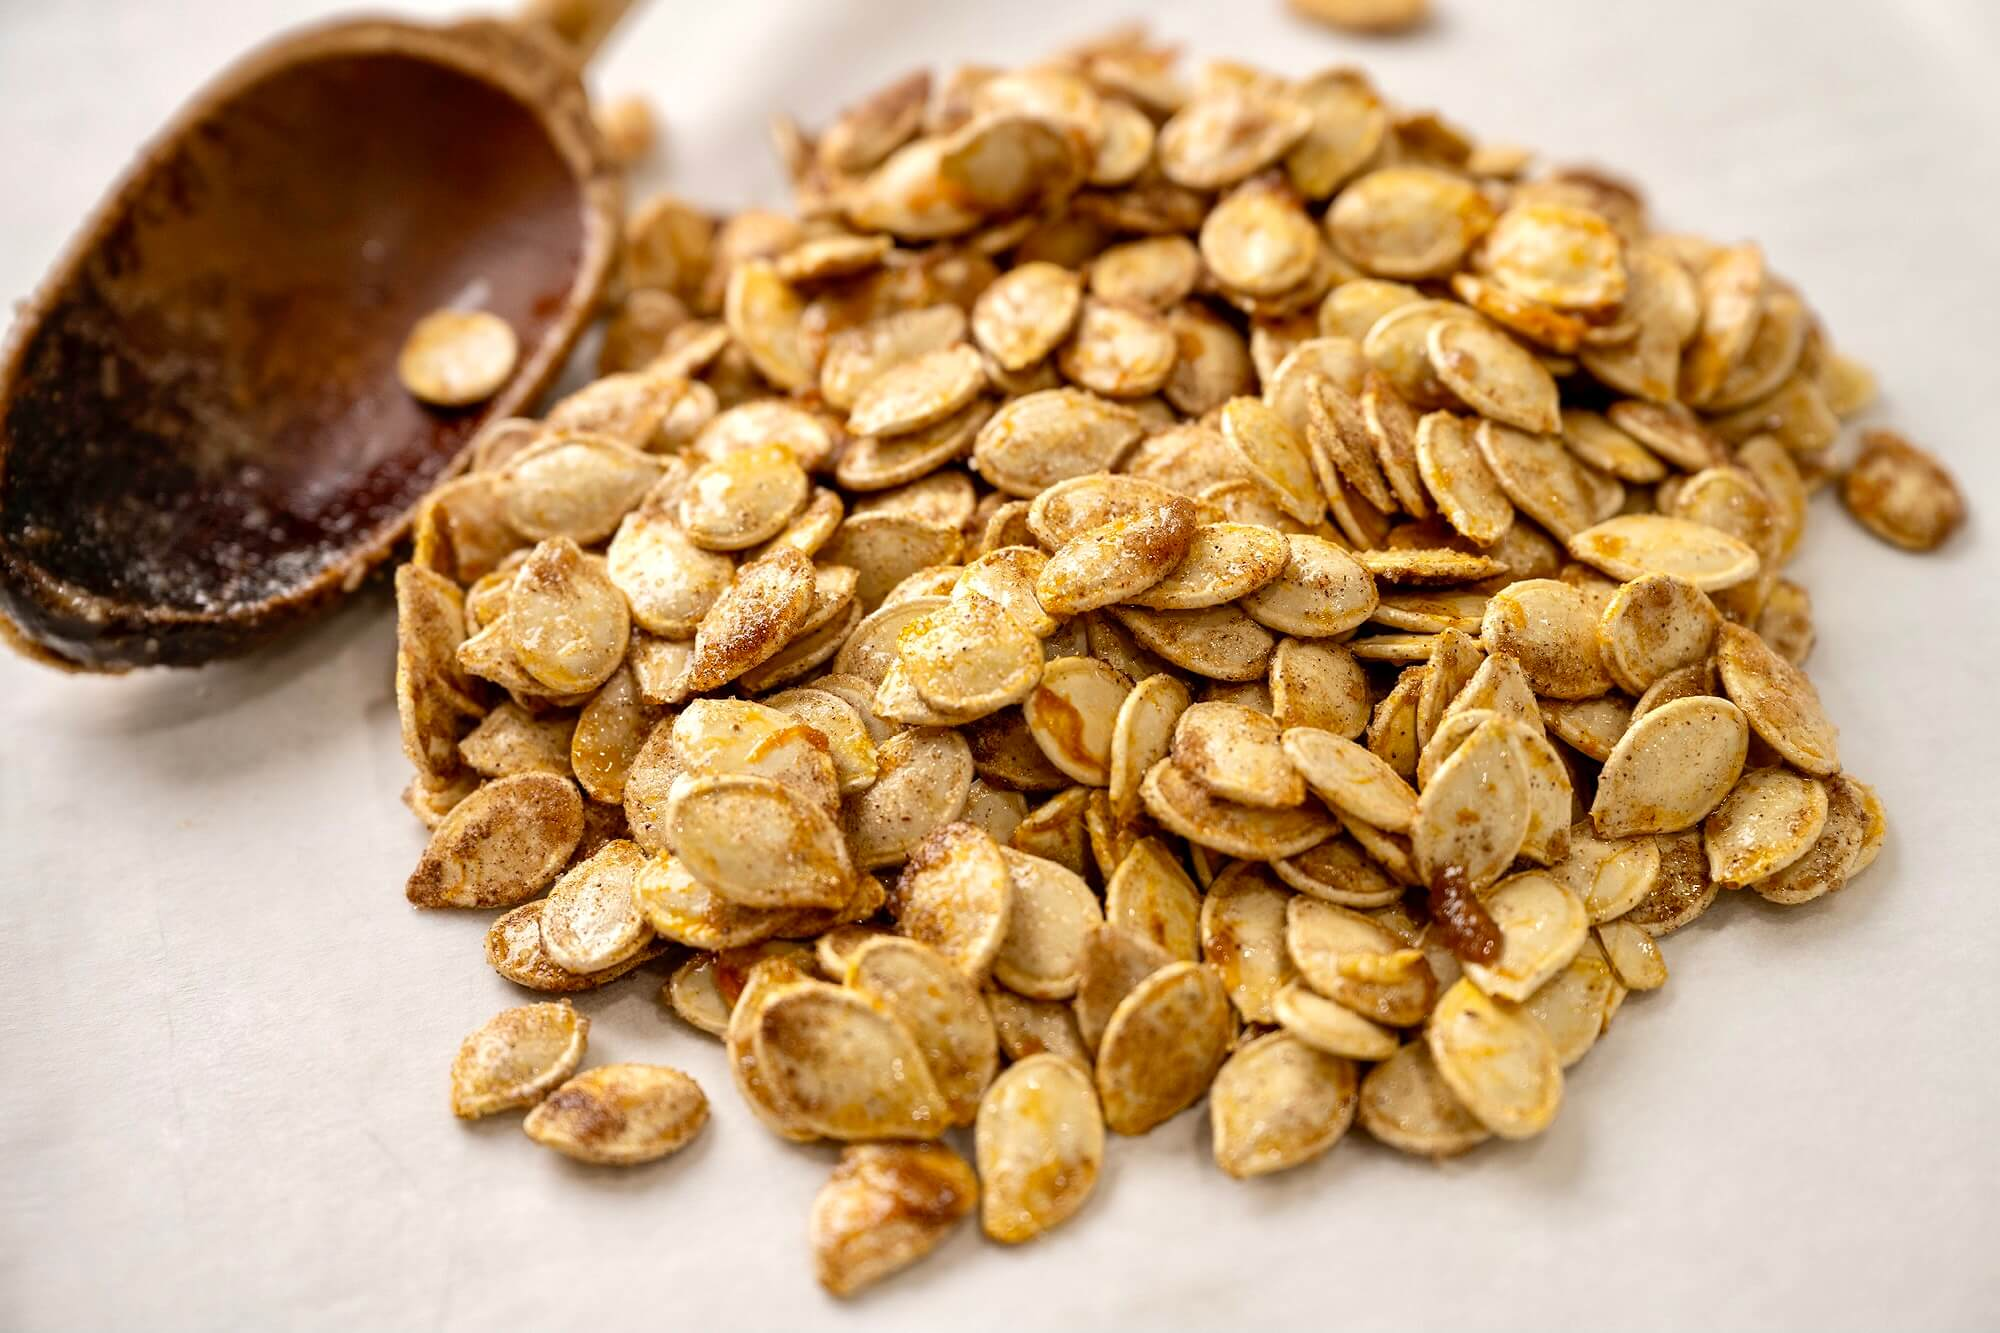 Sugar and spice and everything nice, these crispy seeds offer a snack-worthy way to make the most of your annual pumpkin carving ritual. Taking the time to dry out the seeds, as described in the recipe notes, will create the crispiest, most flavorful seeds.